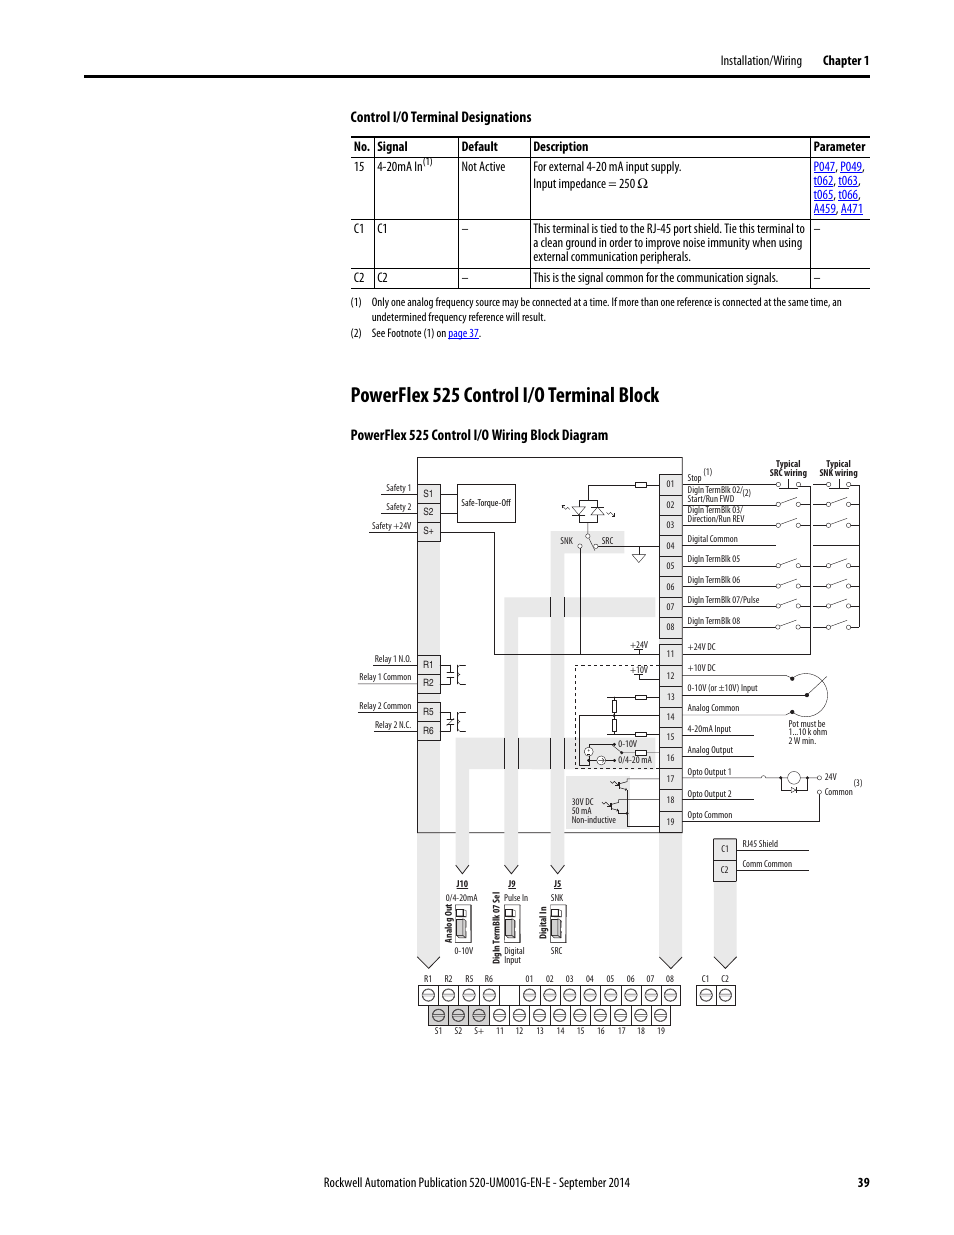 rockwell automation 25b powerflex 520 series adjustable frequency ac drive user manual page39 powerflex 525 control i o terminal block, powerflex 525 control i powerflex 40 wiring diagram at creativeand.co